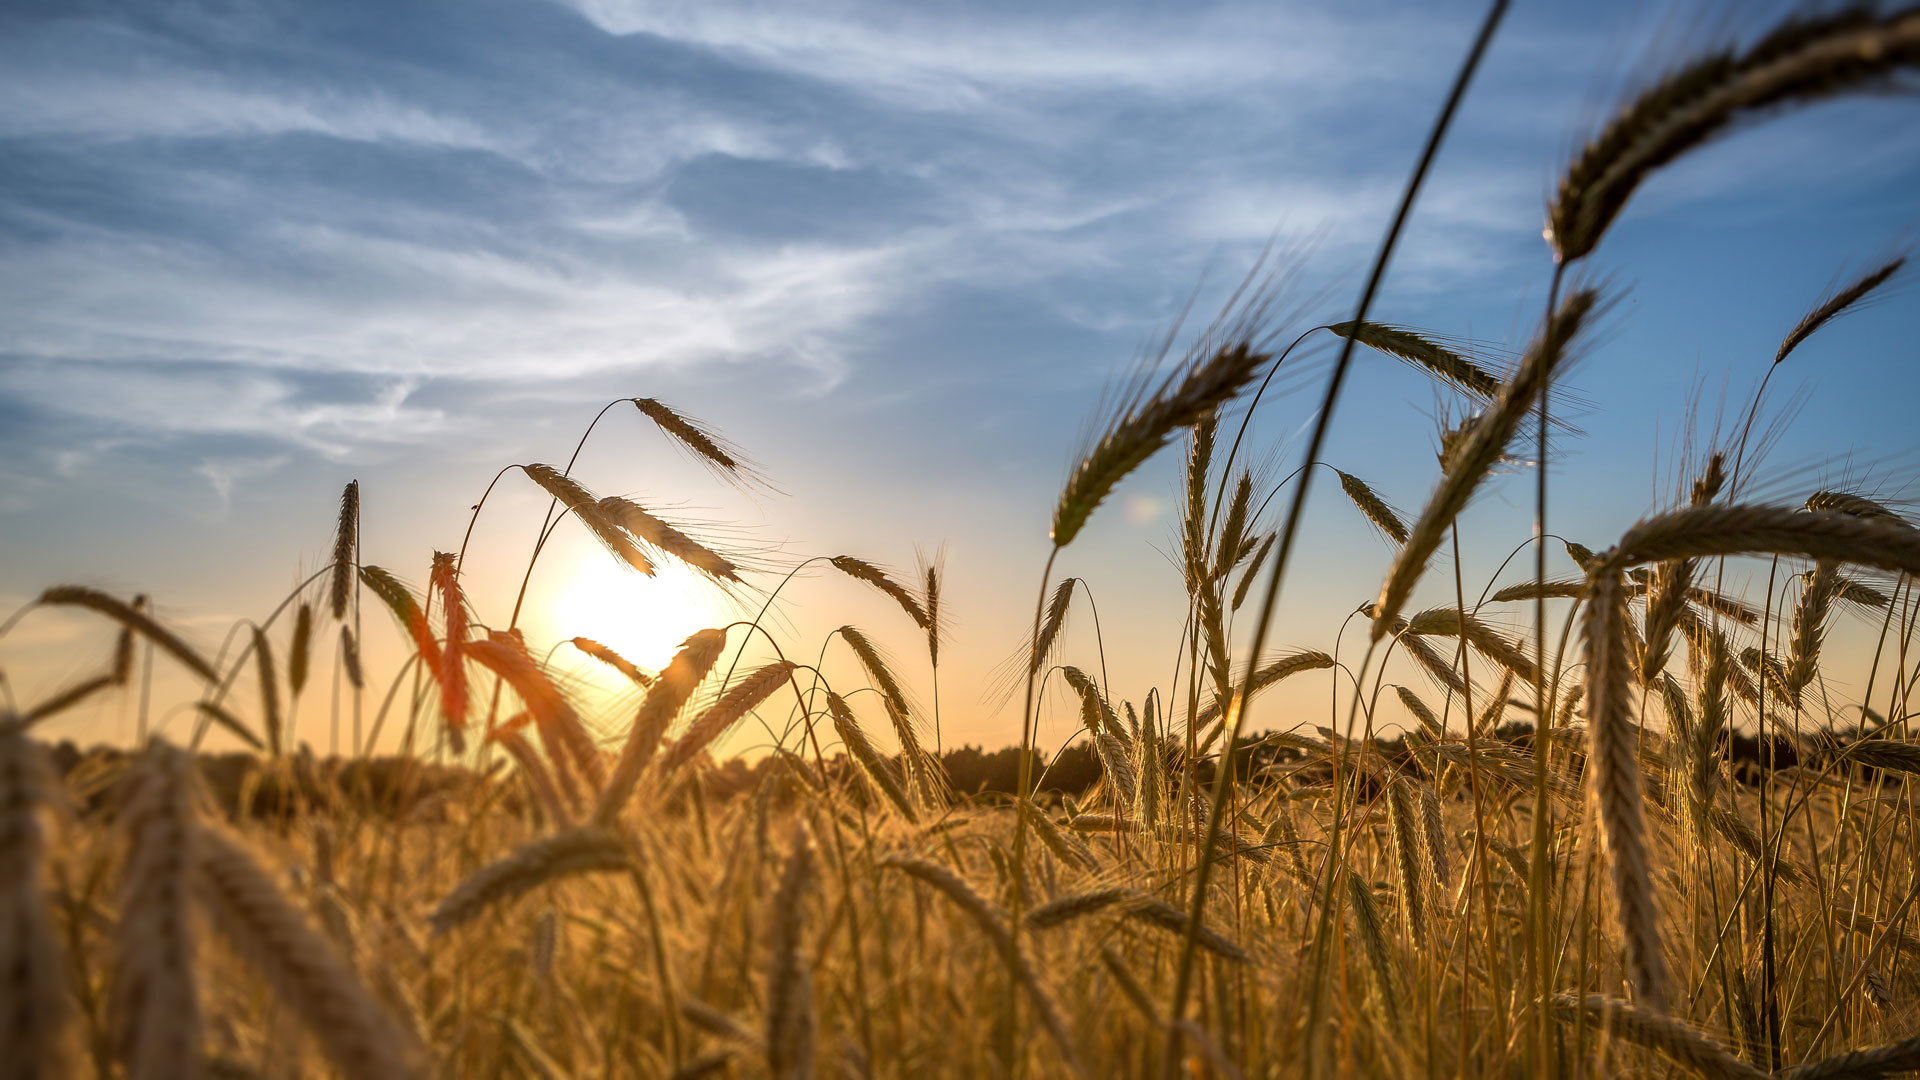 The market for organic grains such as corn, soybeans, and wheat can be volatile from year to year or even over a growing season based on constant changes...